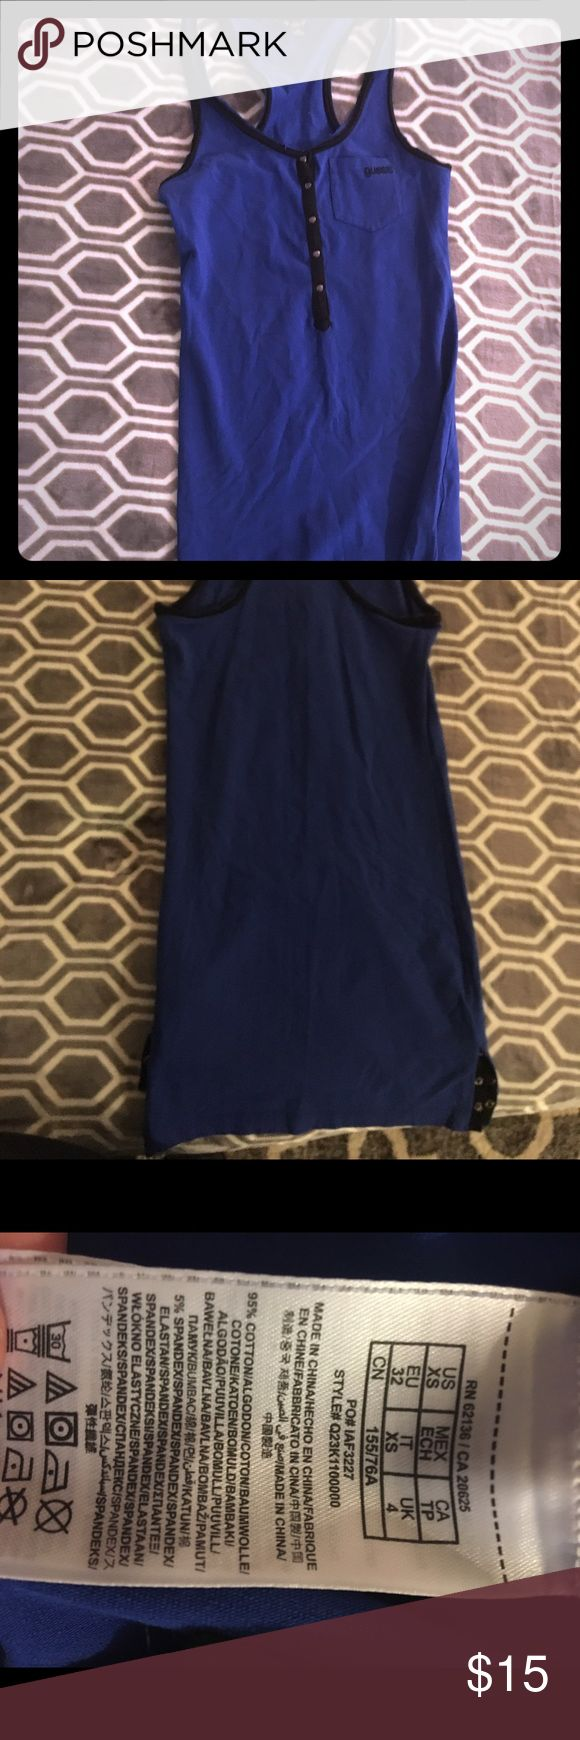 Guess dress size extra small Racerback guess dress size extra small worn once in great condition. Can not model sorry too small for me Guess Dresses